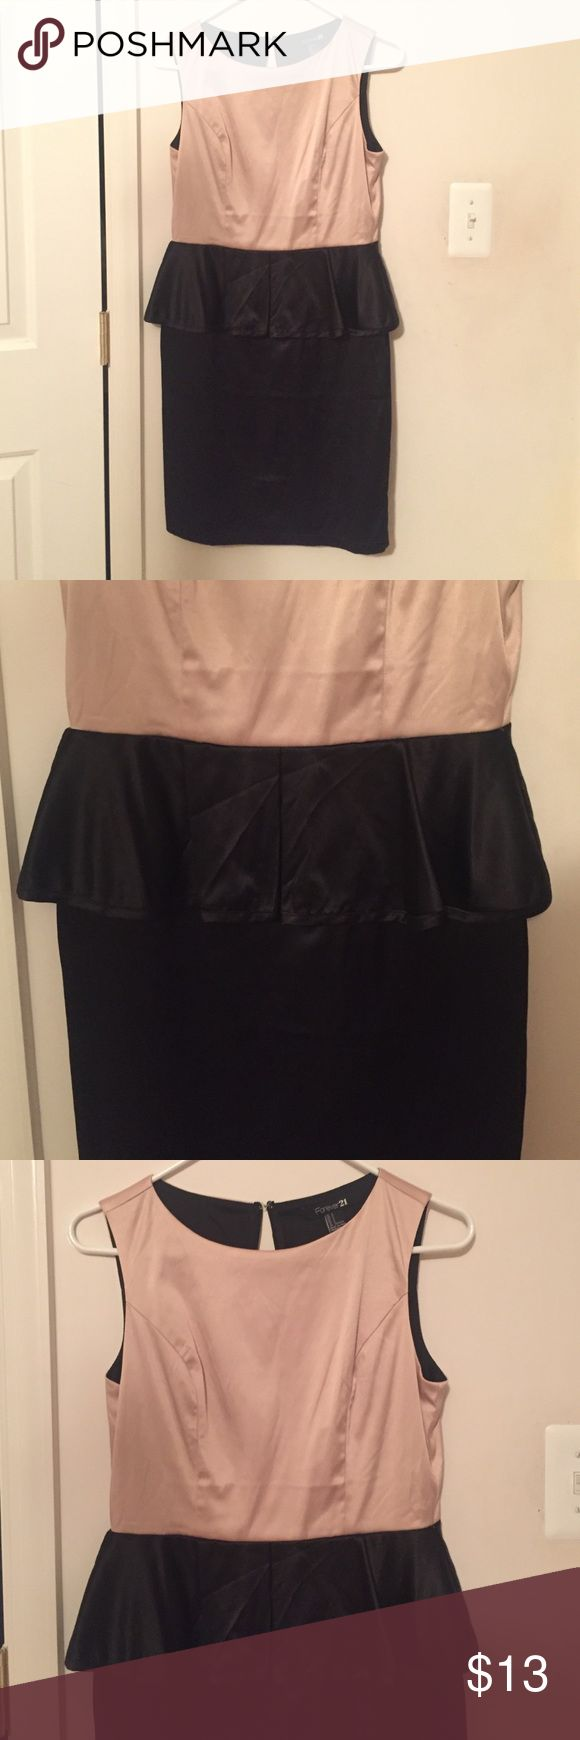 Light pink and black Peplum dress from F21 Not Zara. Worn a few times, no damage, great for cocktail and dress parties Forever 21 Dresses Midi